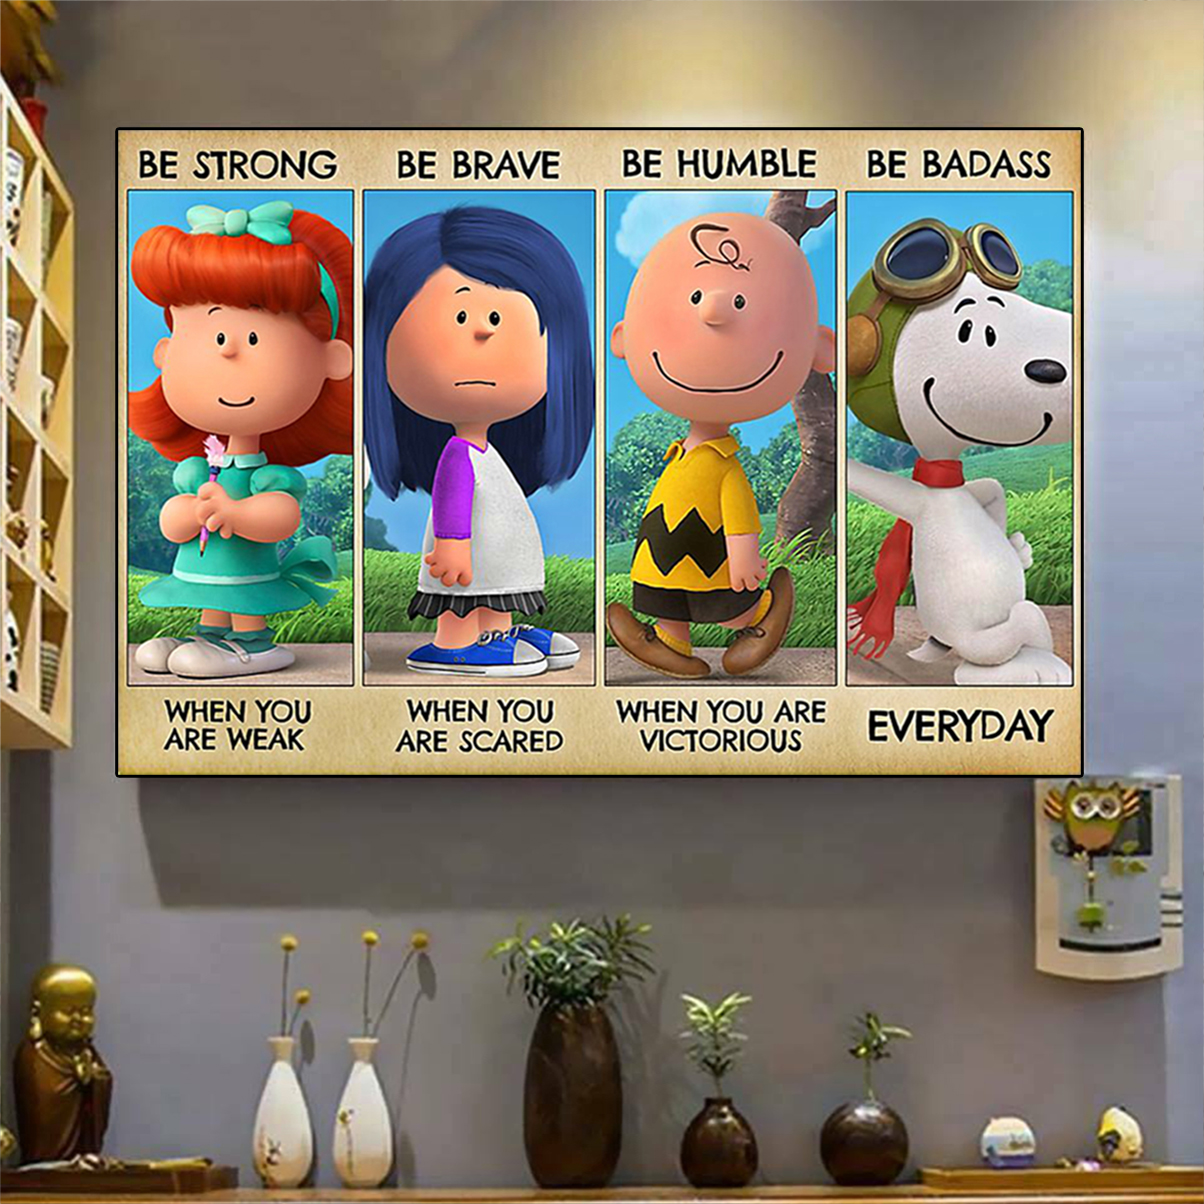 Peanuts characters be strong be brave be humble be badass poster A2